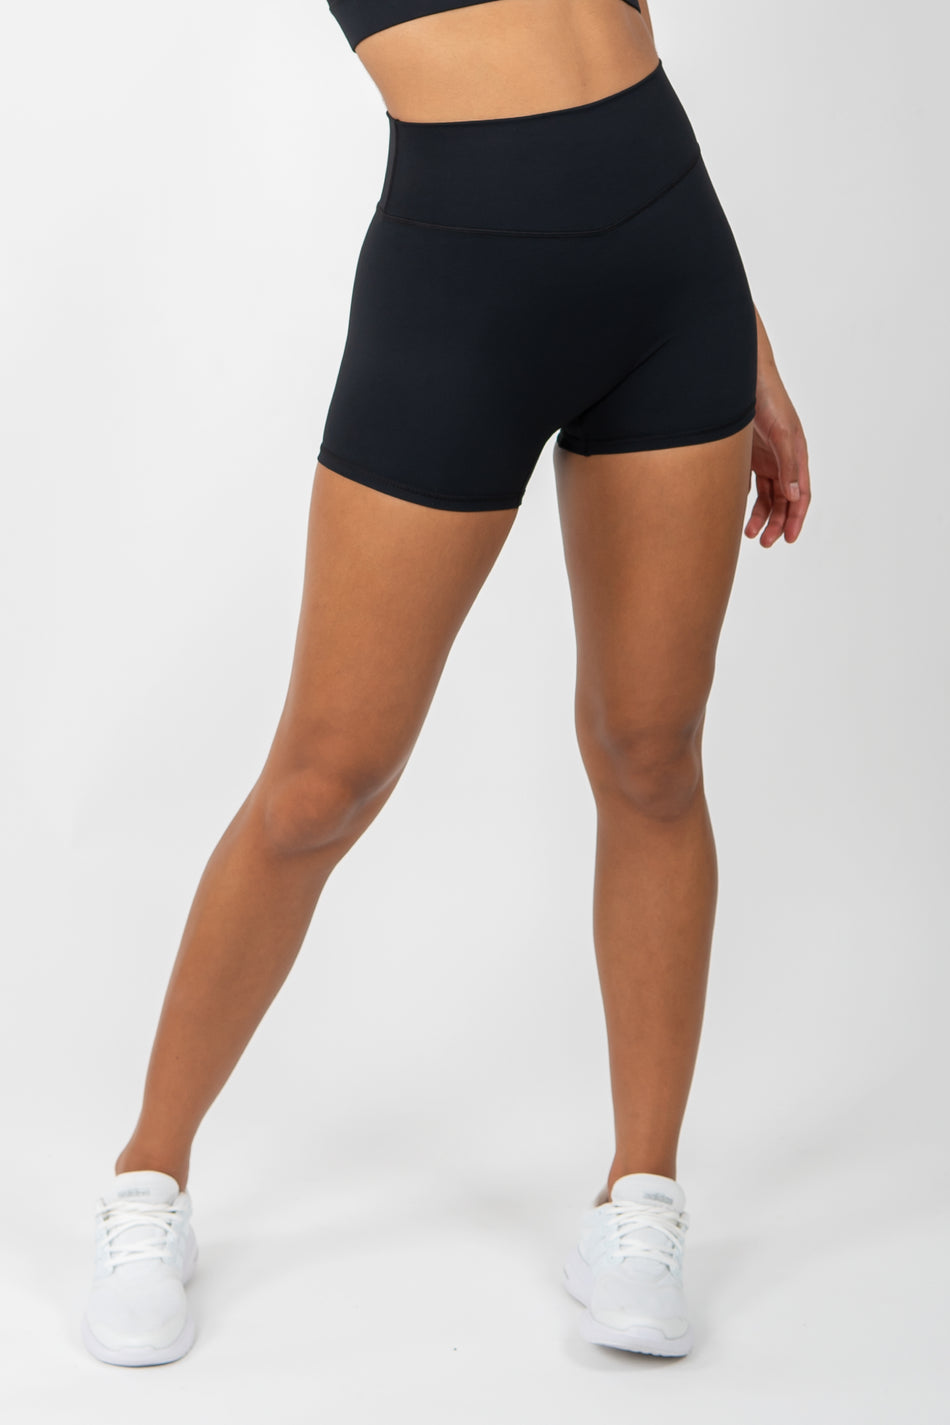 Infinity Shorts - Black - WearWolf Clothing UK